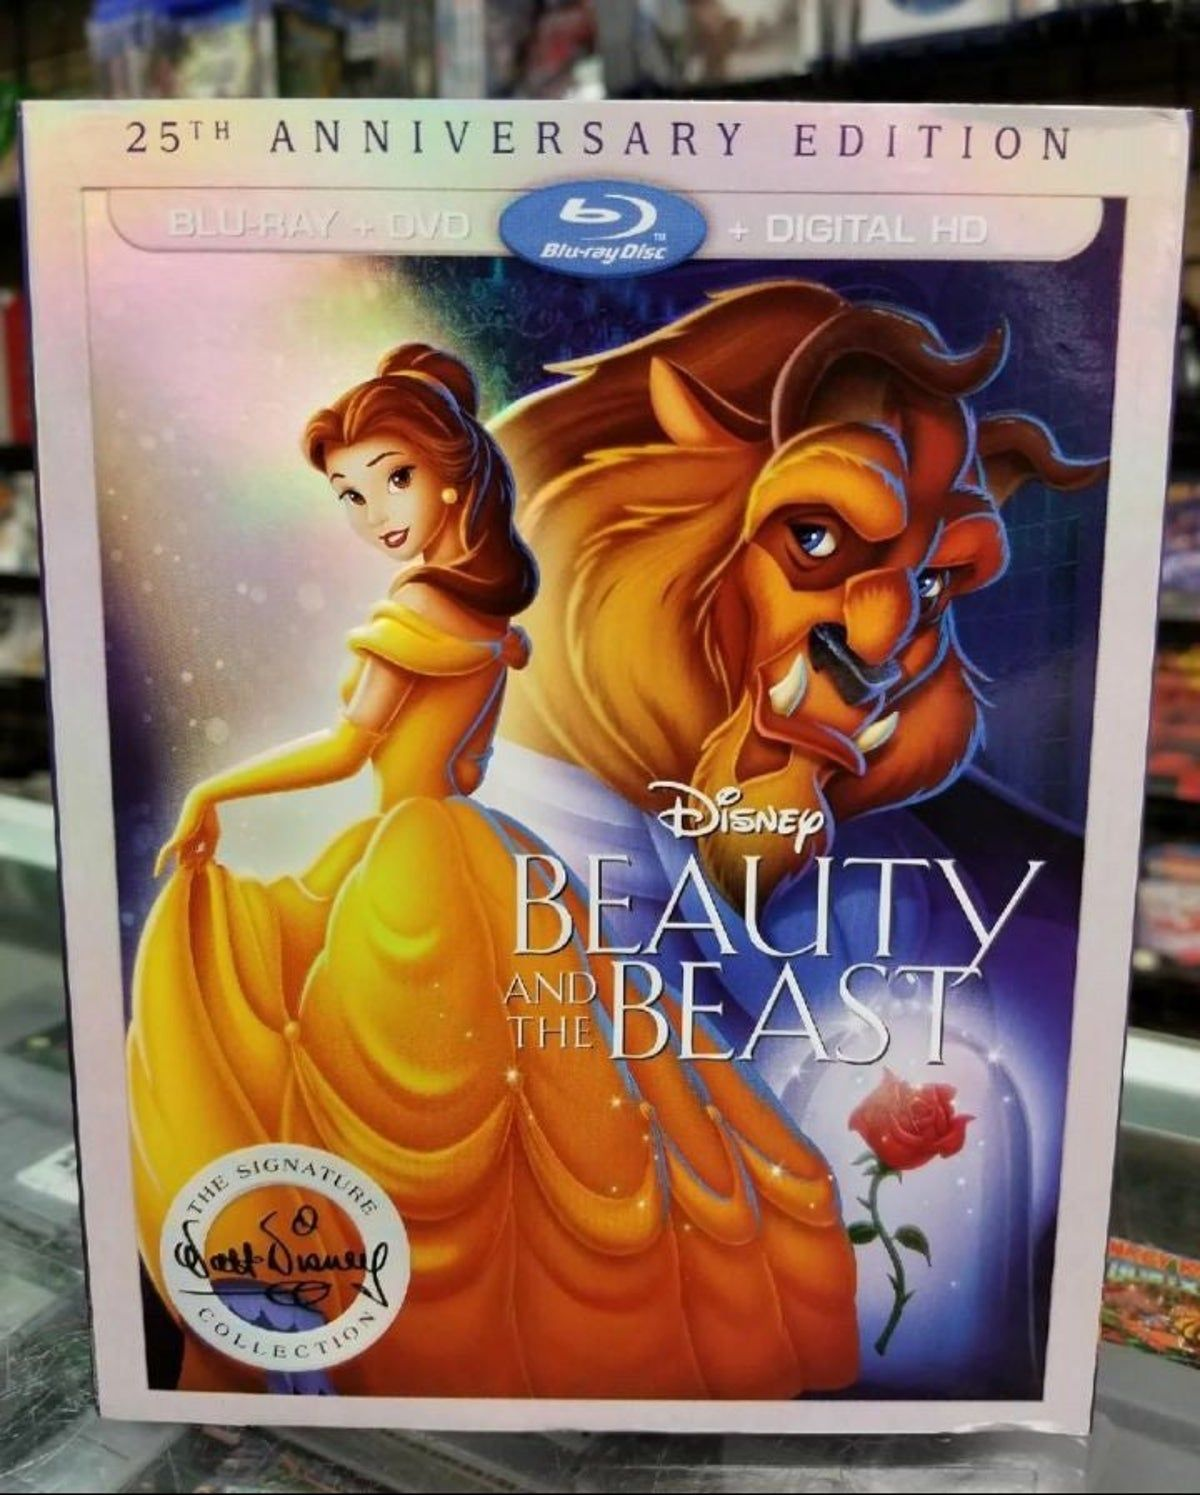 Beauty Beast Bluray Dvd Digital 2020 美女と野獣 ディズニー